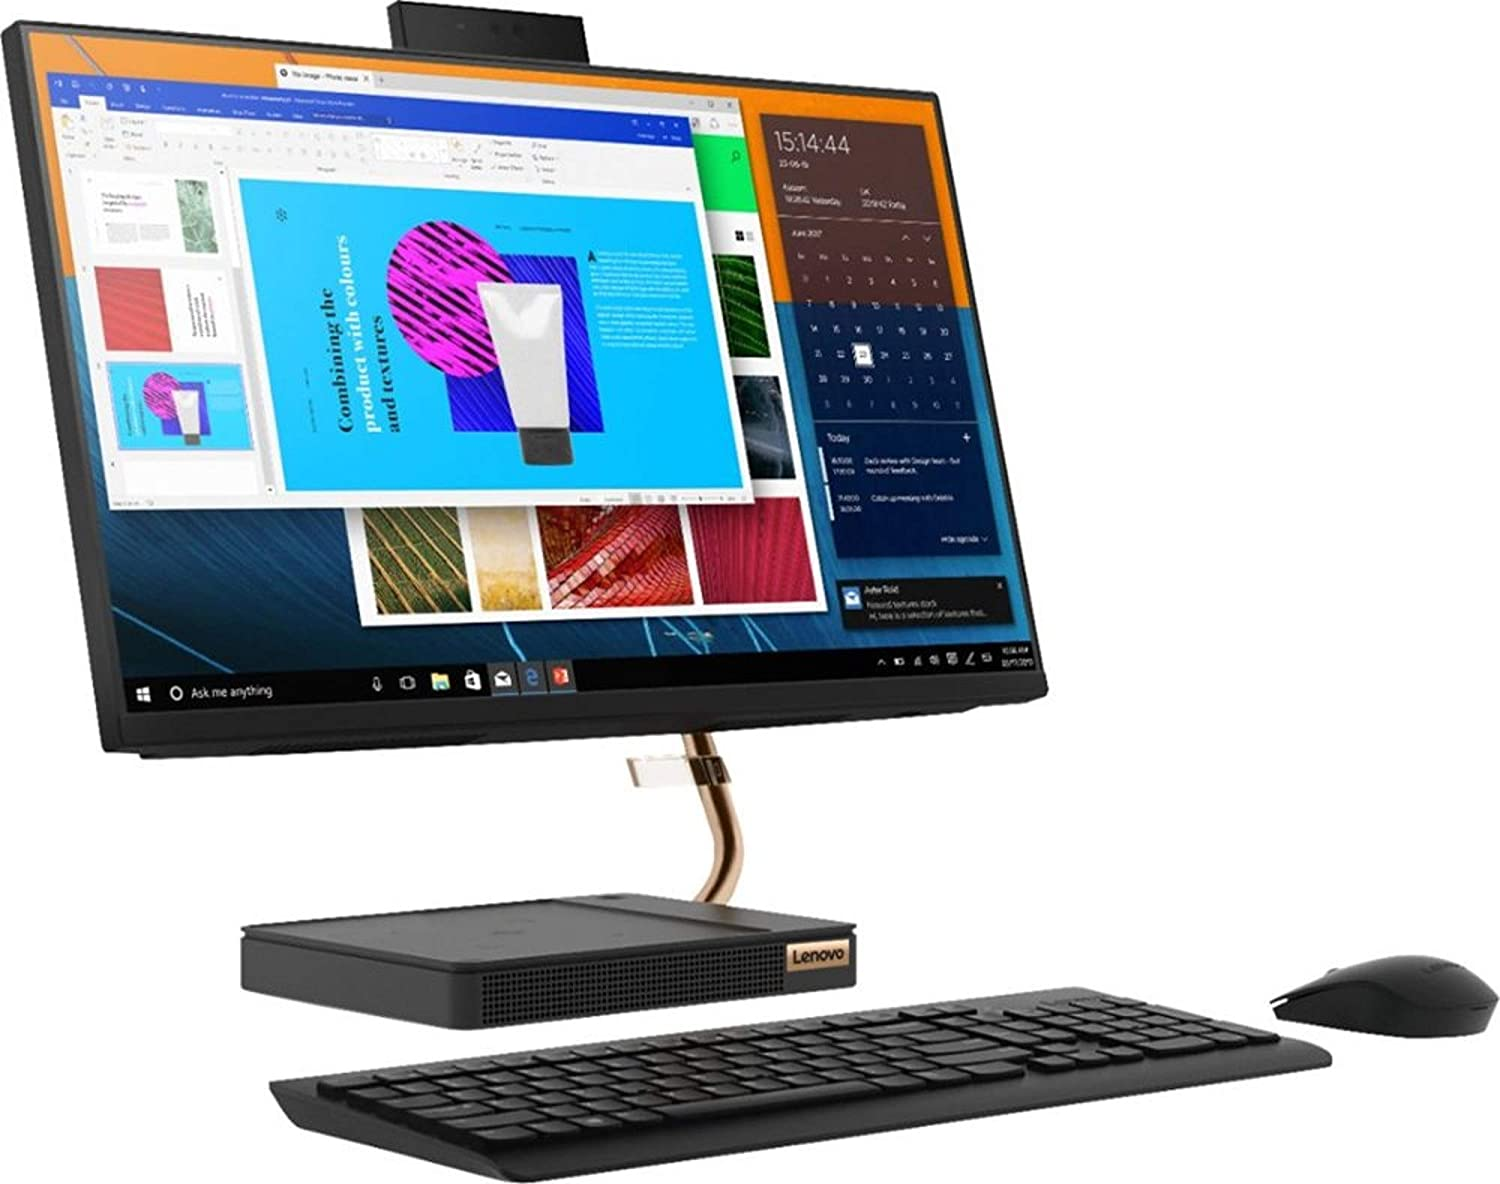 "Lenovo 24"" FHD (1920 x 1080) IPS Touchscreen All-in-One Ideacentre A540 with Intel 8 Core i7-9700T Processor up to 4.30 GHz, 16GB DDR4 RAM, 512GB PCIe SSD, and Windows 10 Pro 64"